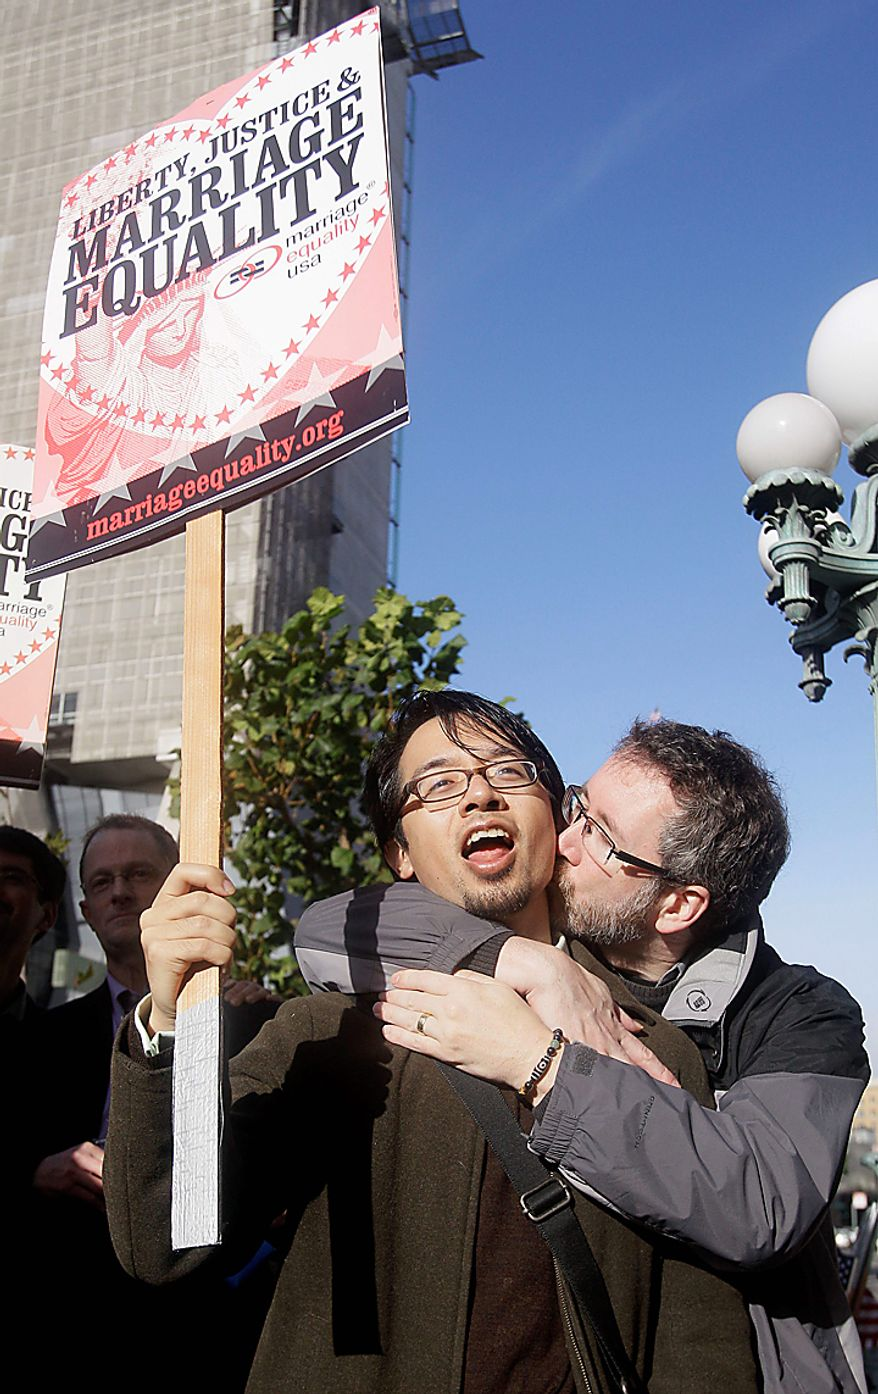 Jeff Tabaco, left, gets a kiss from Thom Watson during a rally outside the courthouse before a hearing in the Ninth Circuit Court of Appeals, Monday, Dec. 6, 2010, in San Francisco. The federal appeals court in San Francisco began to hear arguments Monday about the voter-approved ban known as Proposition 8. A trial court judge overturned the measure as a violation of gay Californians' civil rights in August. (AP Photo/Jeff Chiu)